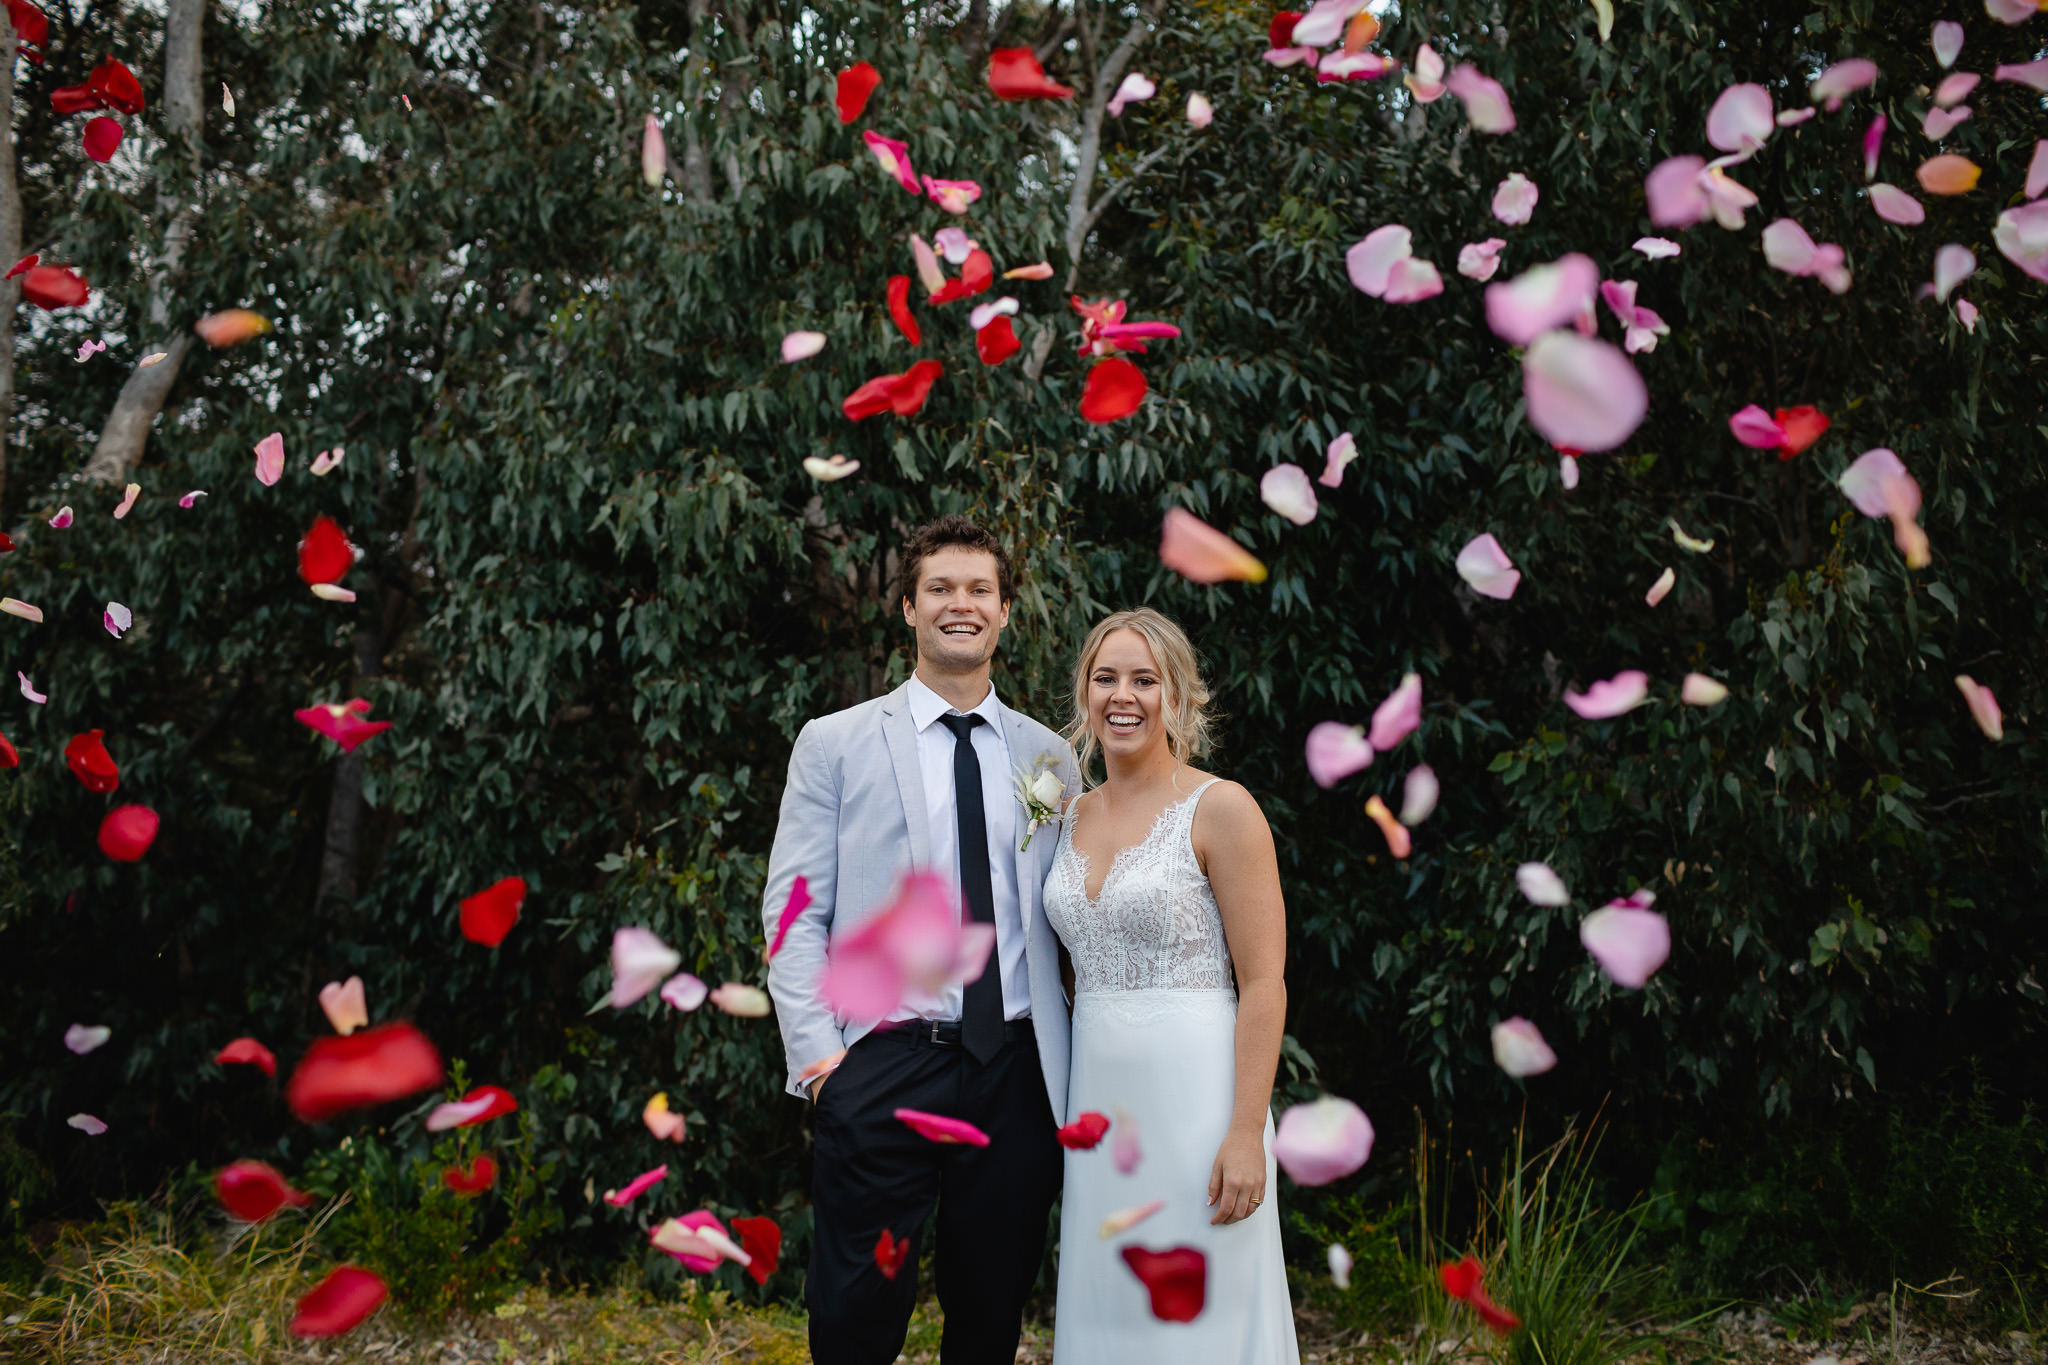 bride and groom laughing and looking at camera while being showered in red and pink rose petals